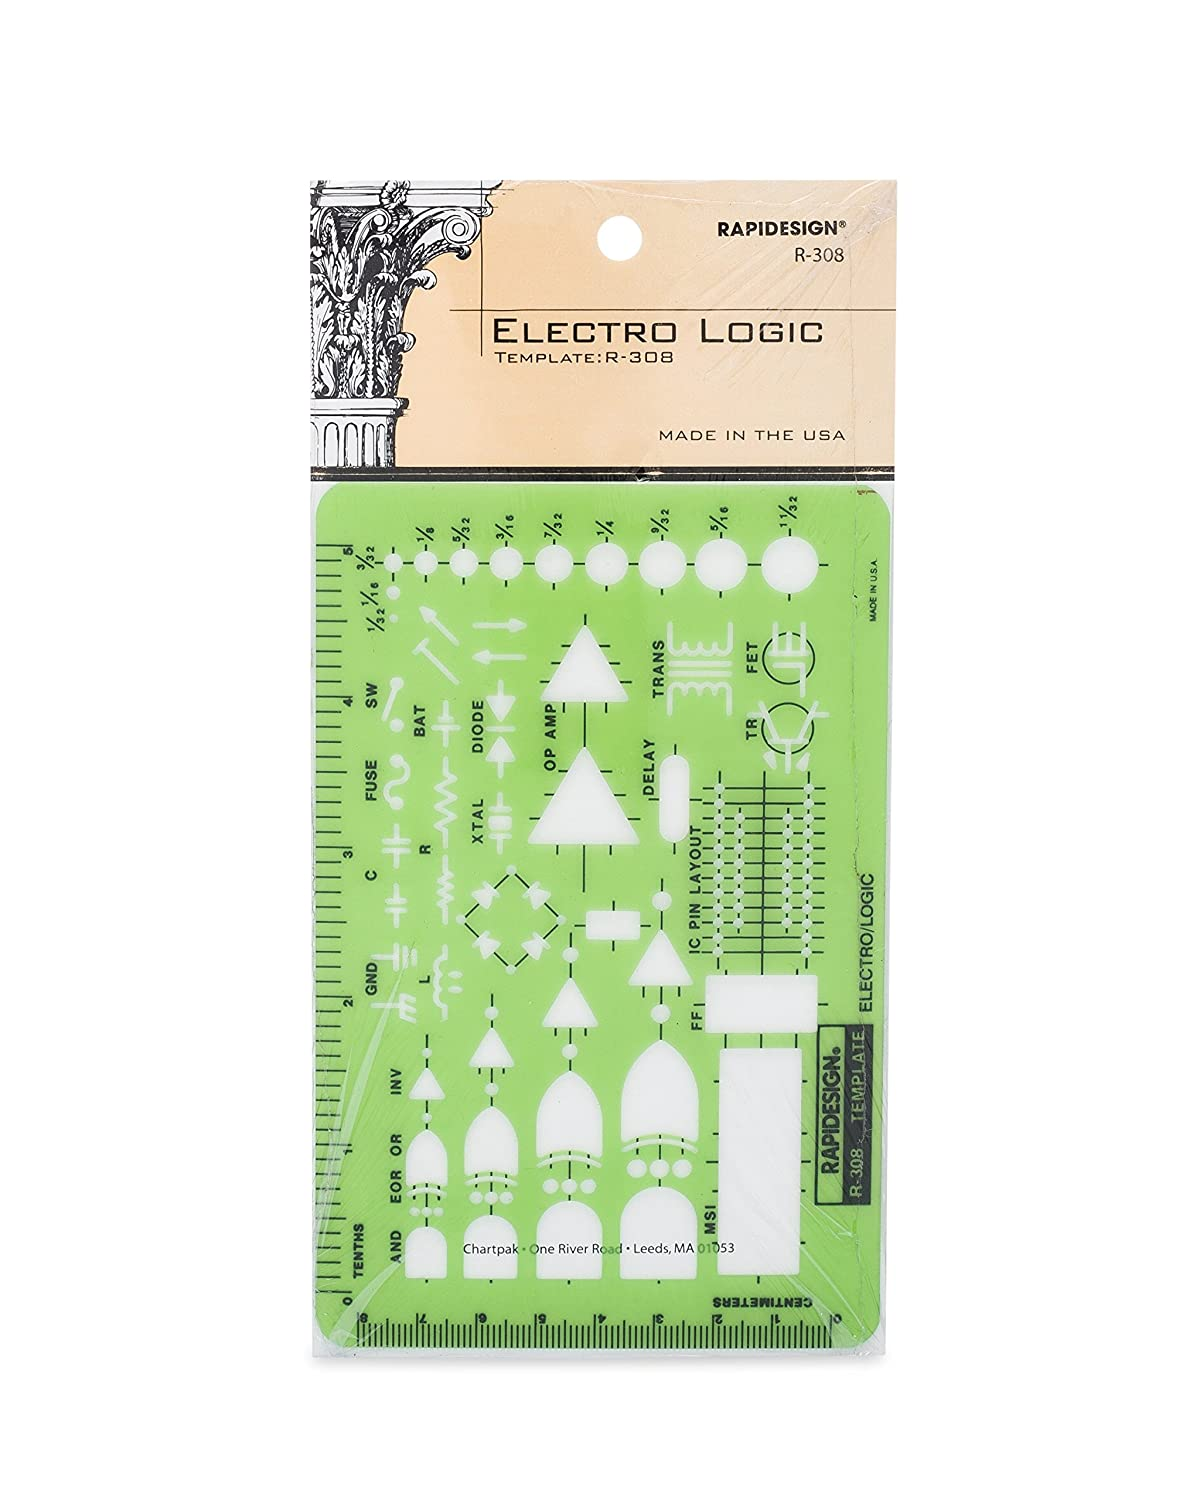 Rapidesign Electro Logic Symbol Template 1 Each R308 Digital Circuit Symbols View Diagram Drafting Tool Sets Office Products